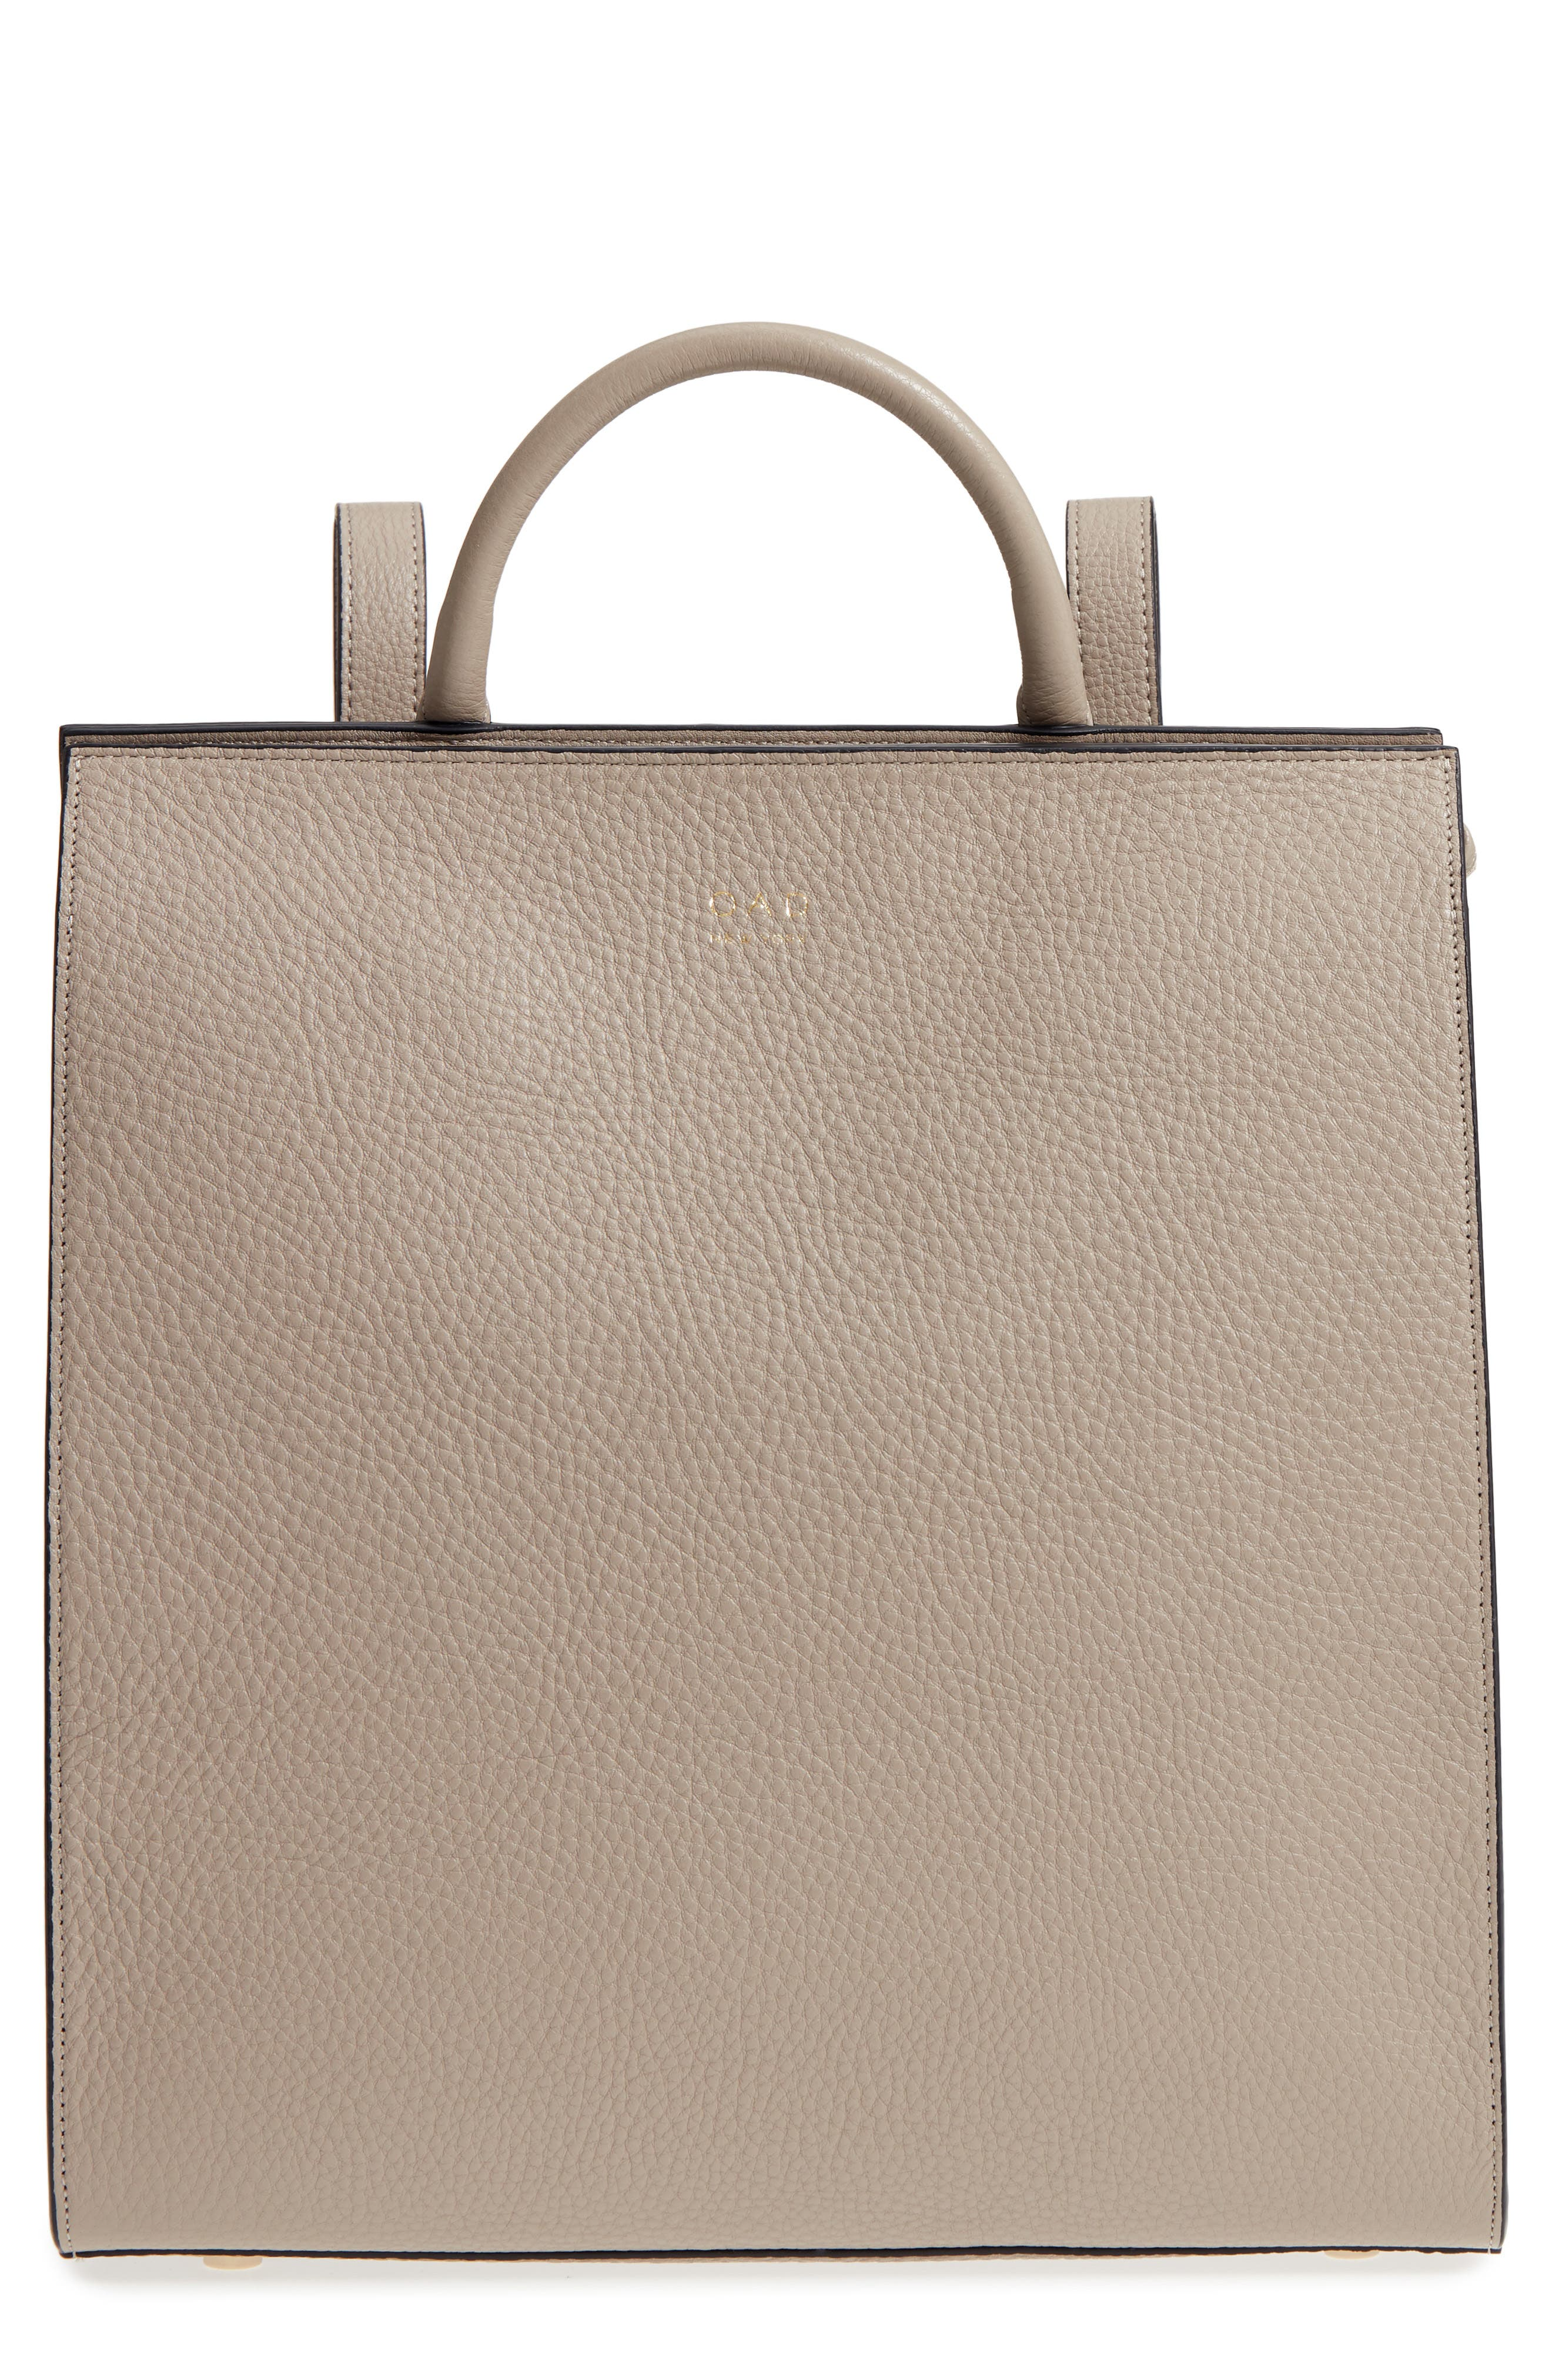 Arc Leather Backpack,                             Main thumbnail 1, color,                             Taupe